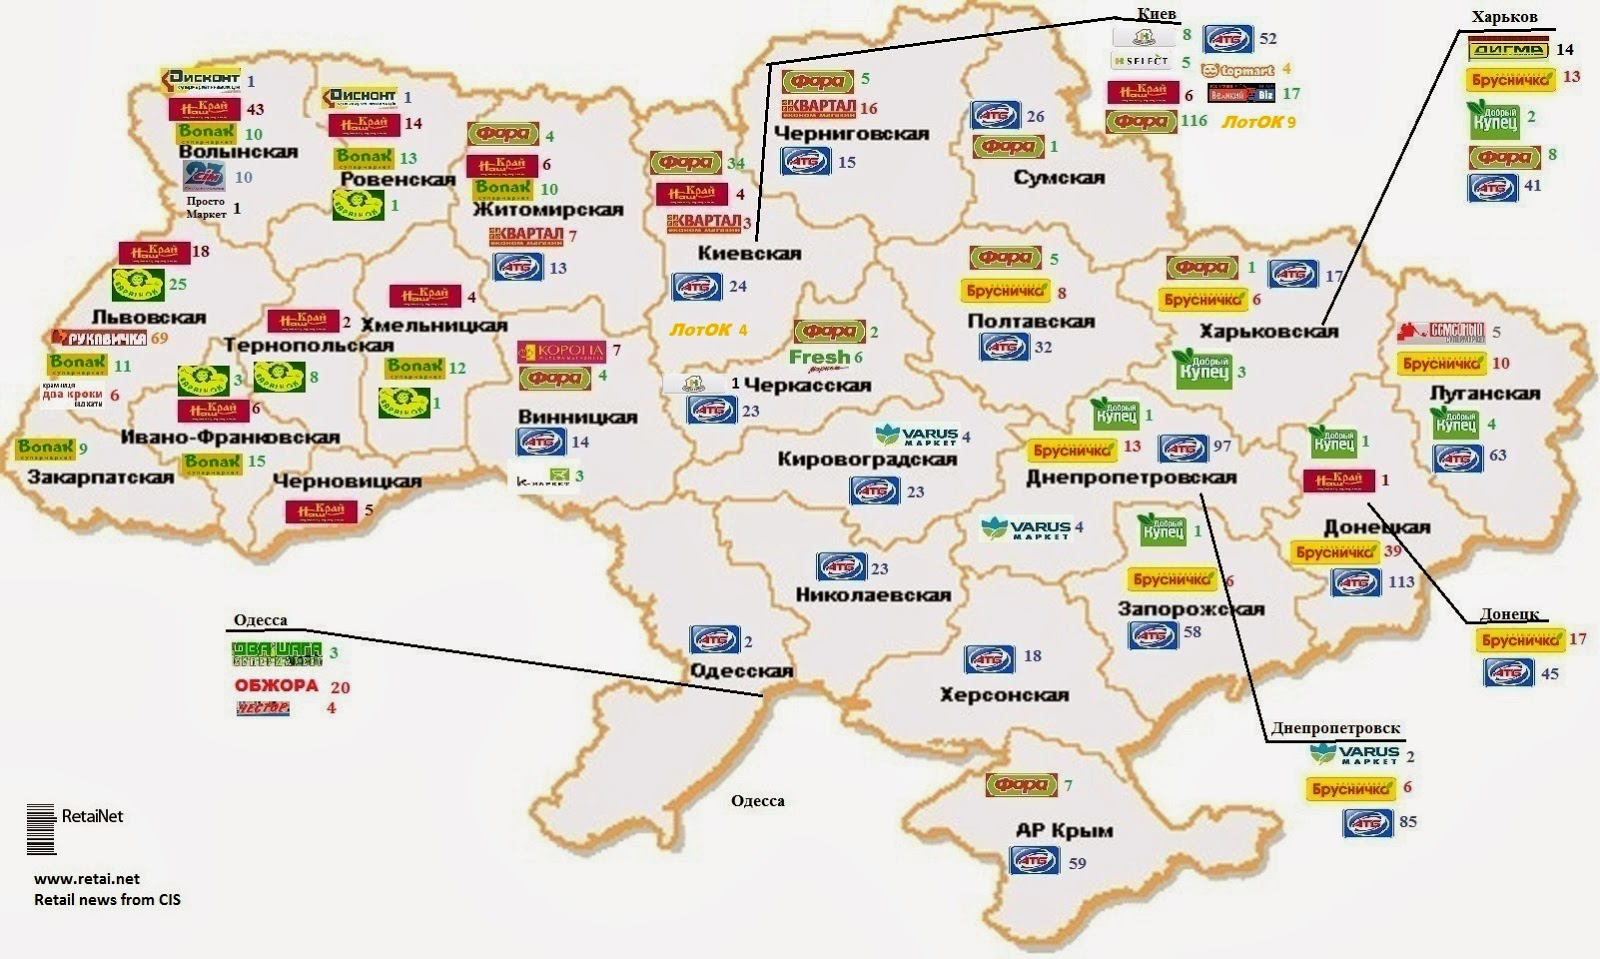 map of ukraine discounters and convenience stores